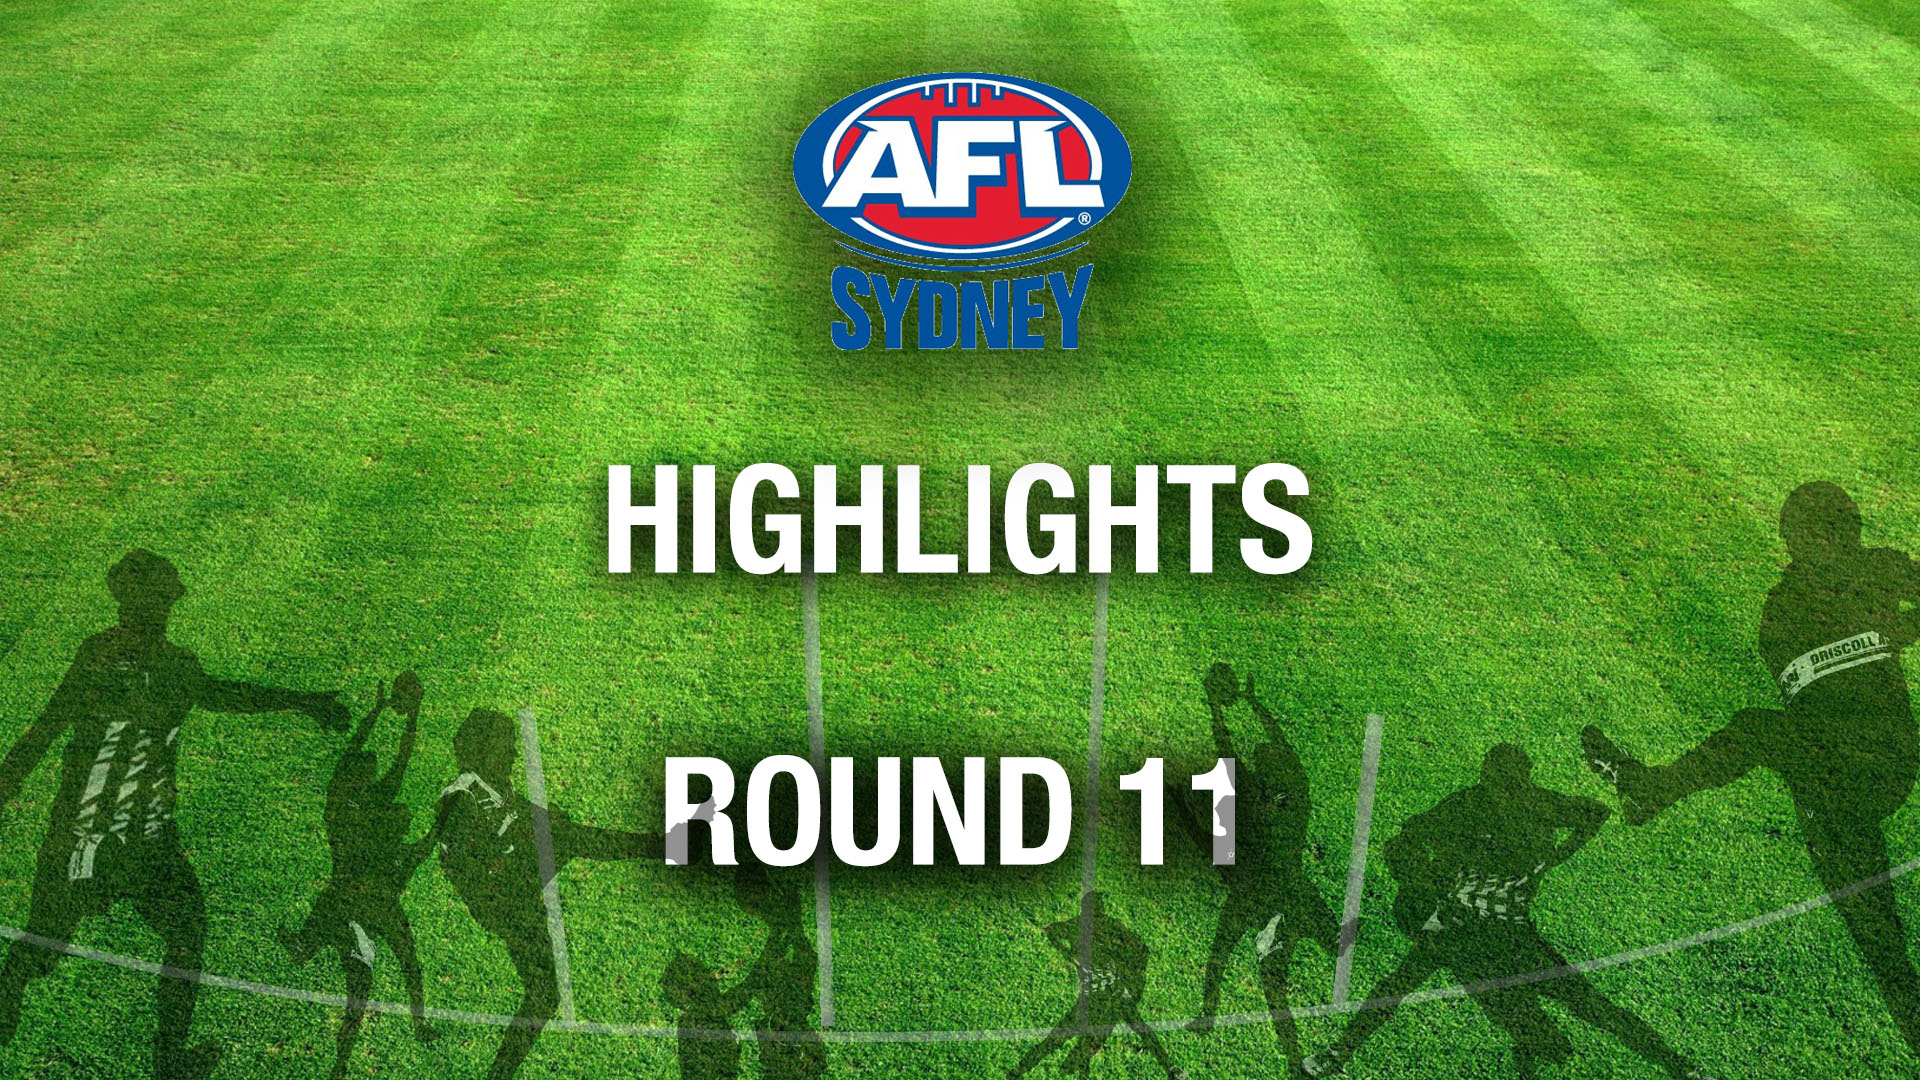 AFL SYDNEY 2018 RD11 HIGHLIGHTS